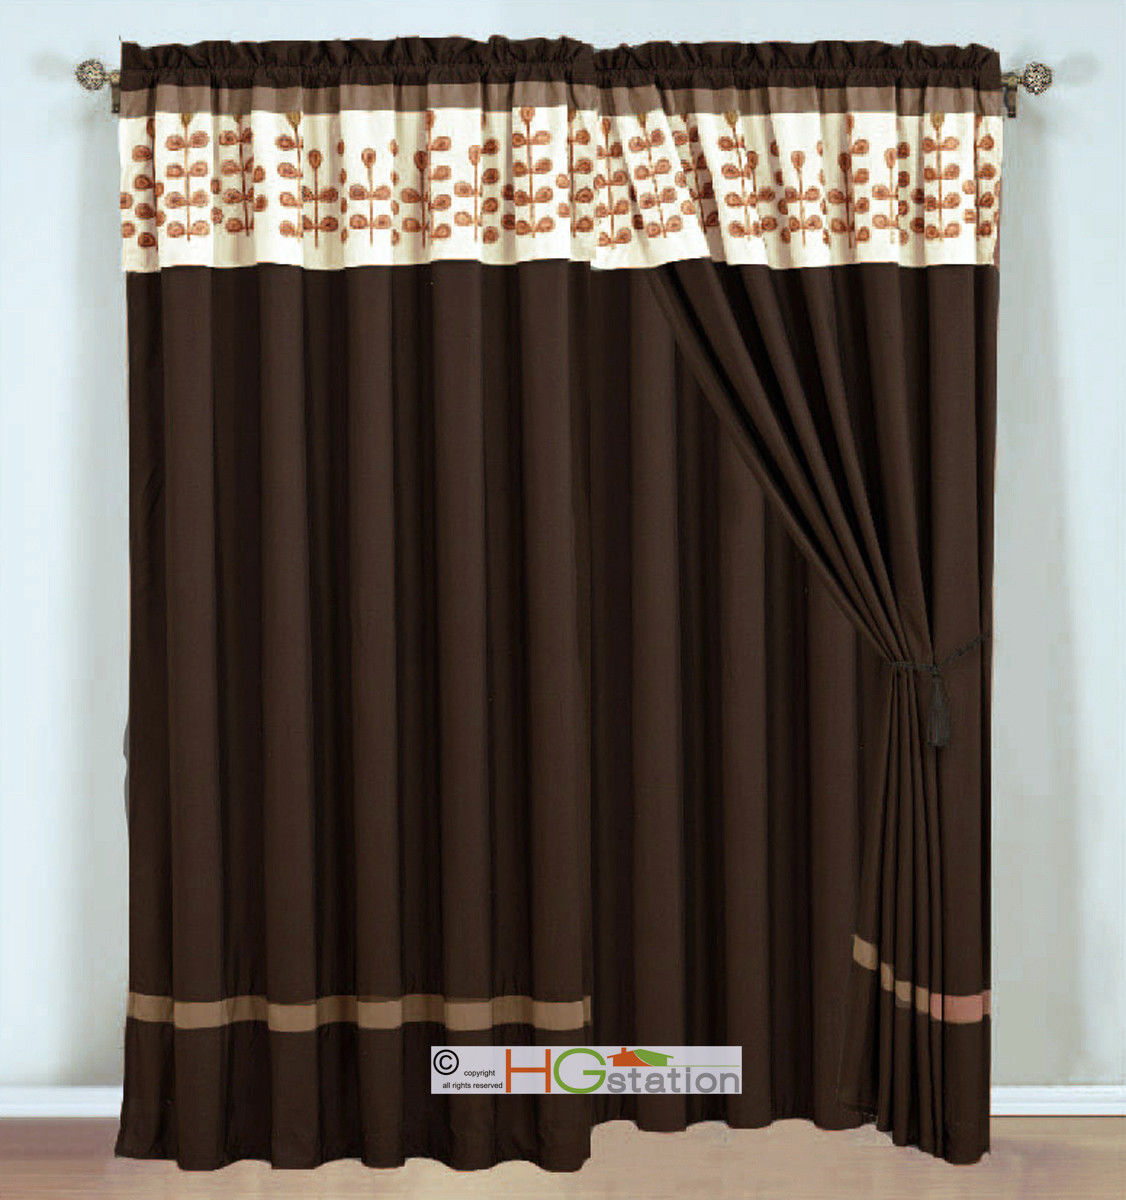 Primary image for 4P Embroidery Obovate Pinnate Leaves Curtain Set Mocha Brown Beige Valance Sheer